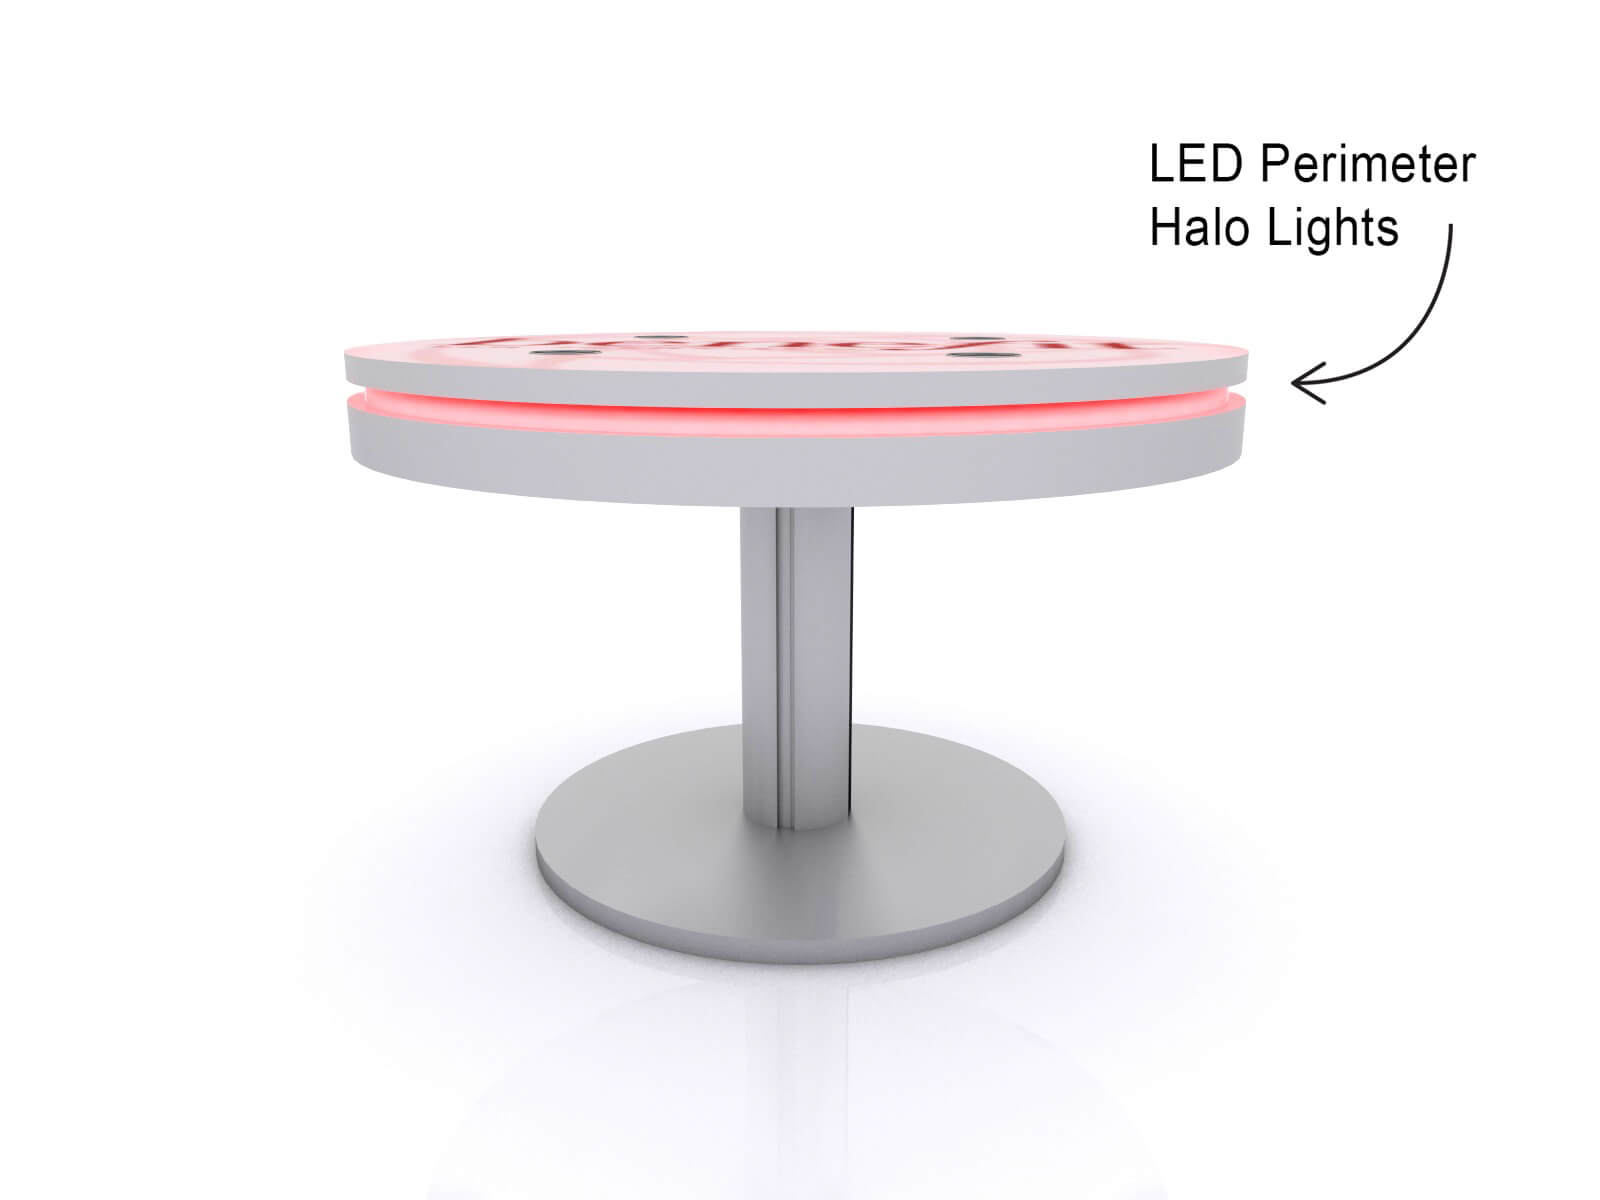 MOD-1452 Trade Show Wireless Charging Station - image 4